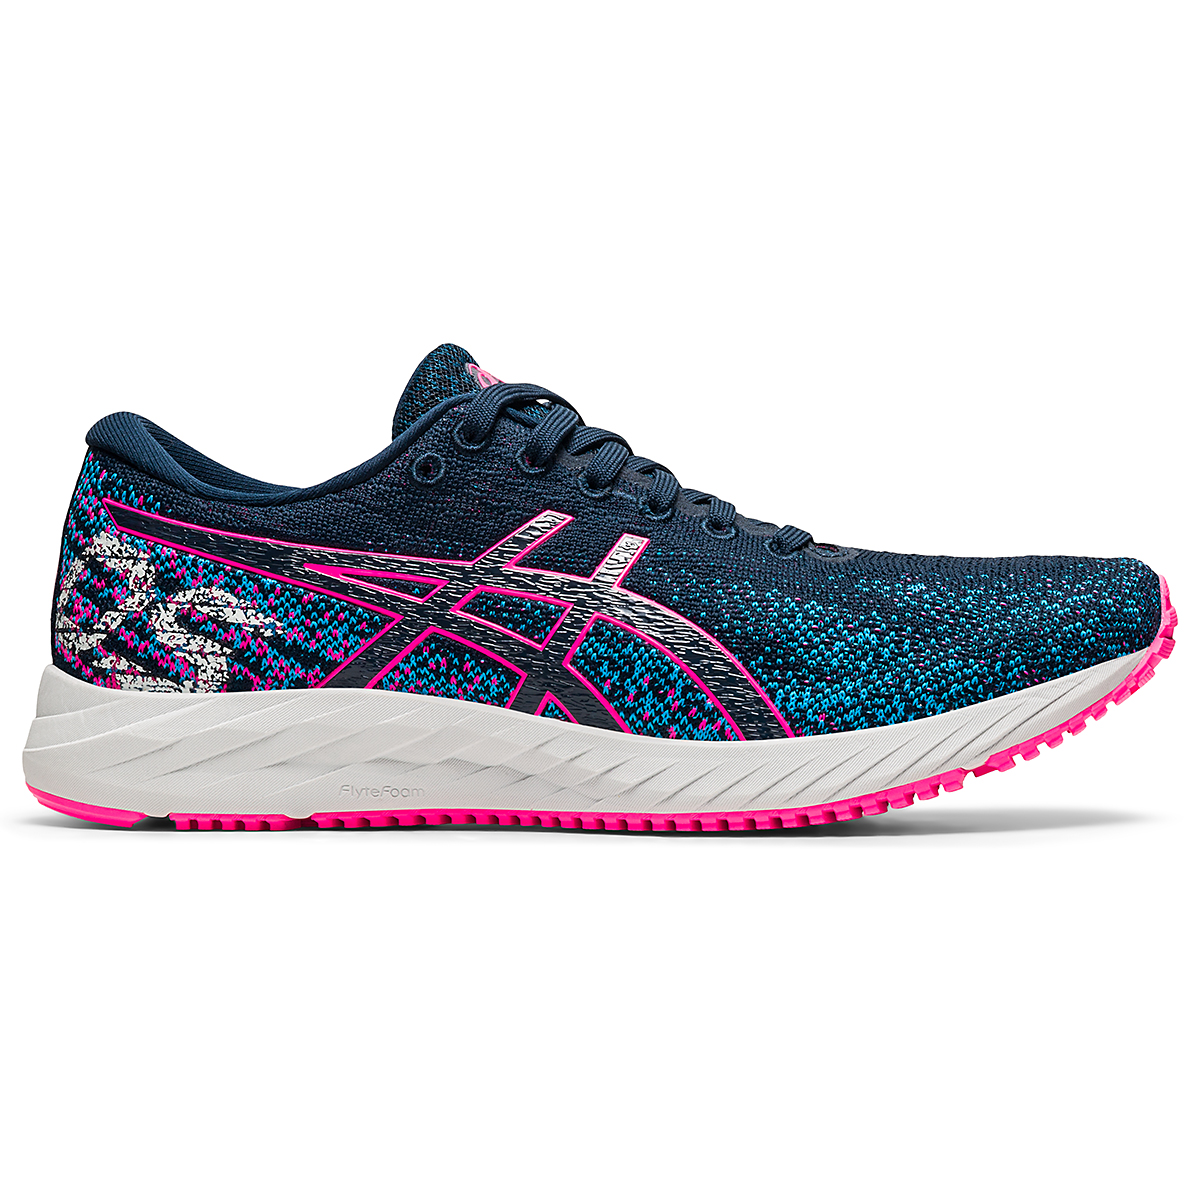 Women's Asics Gel-DS Trainer 26 Running Shoe - Color: French Blue/Hot Pink - Size: 5 - Width: Regular, French Blue/Hot Pink, large, image 1